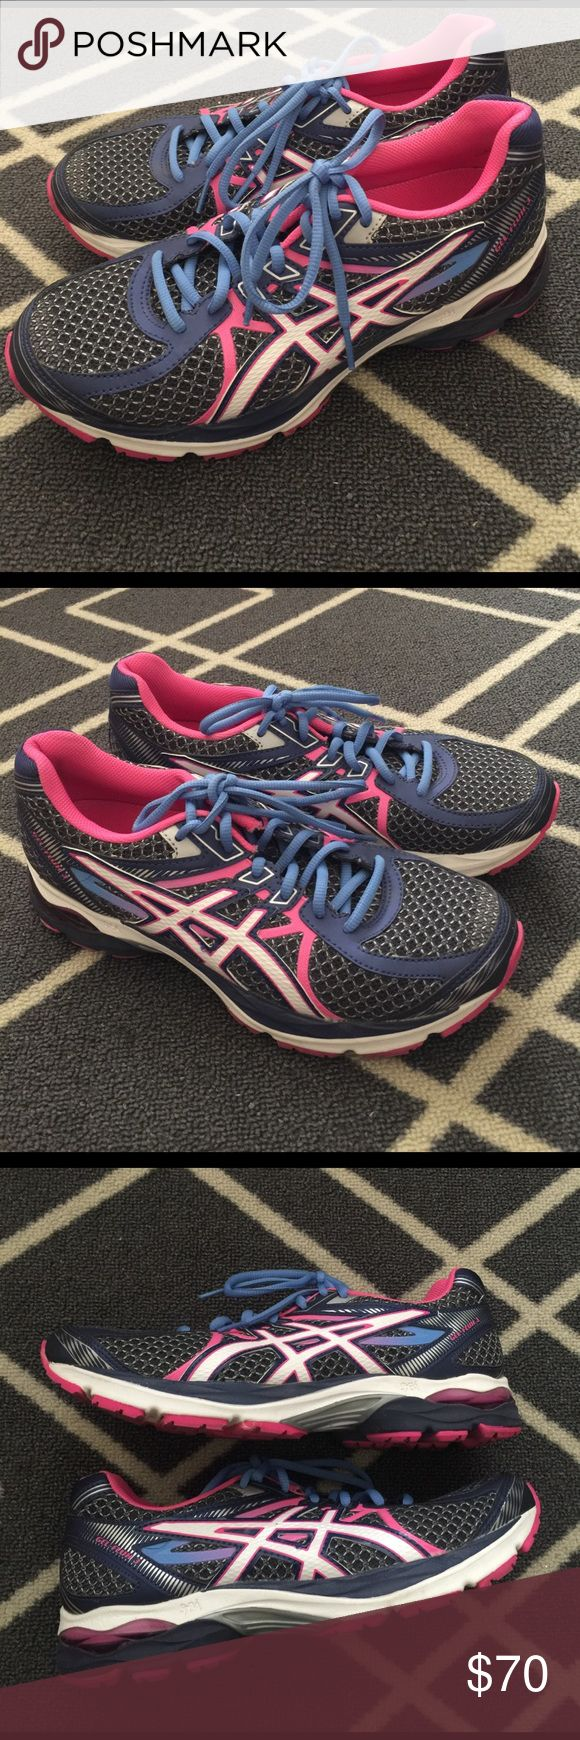 ⭐️Clearance⭐️ASICS Running Shoe Like New condition Asics Shoes Athletic Shoes